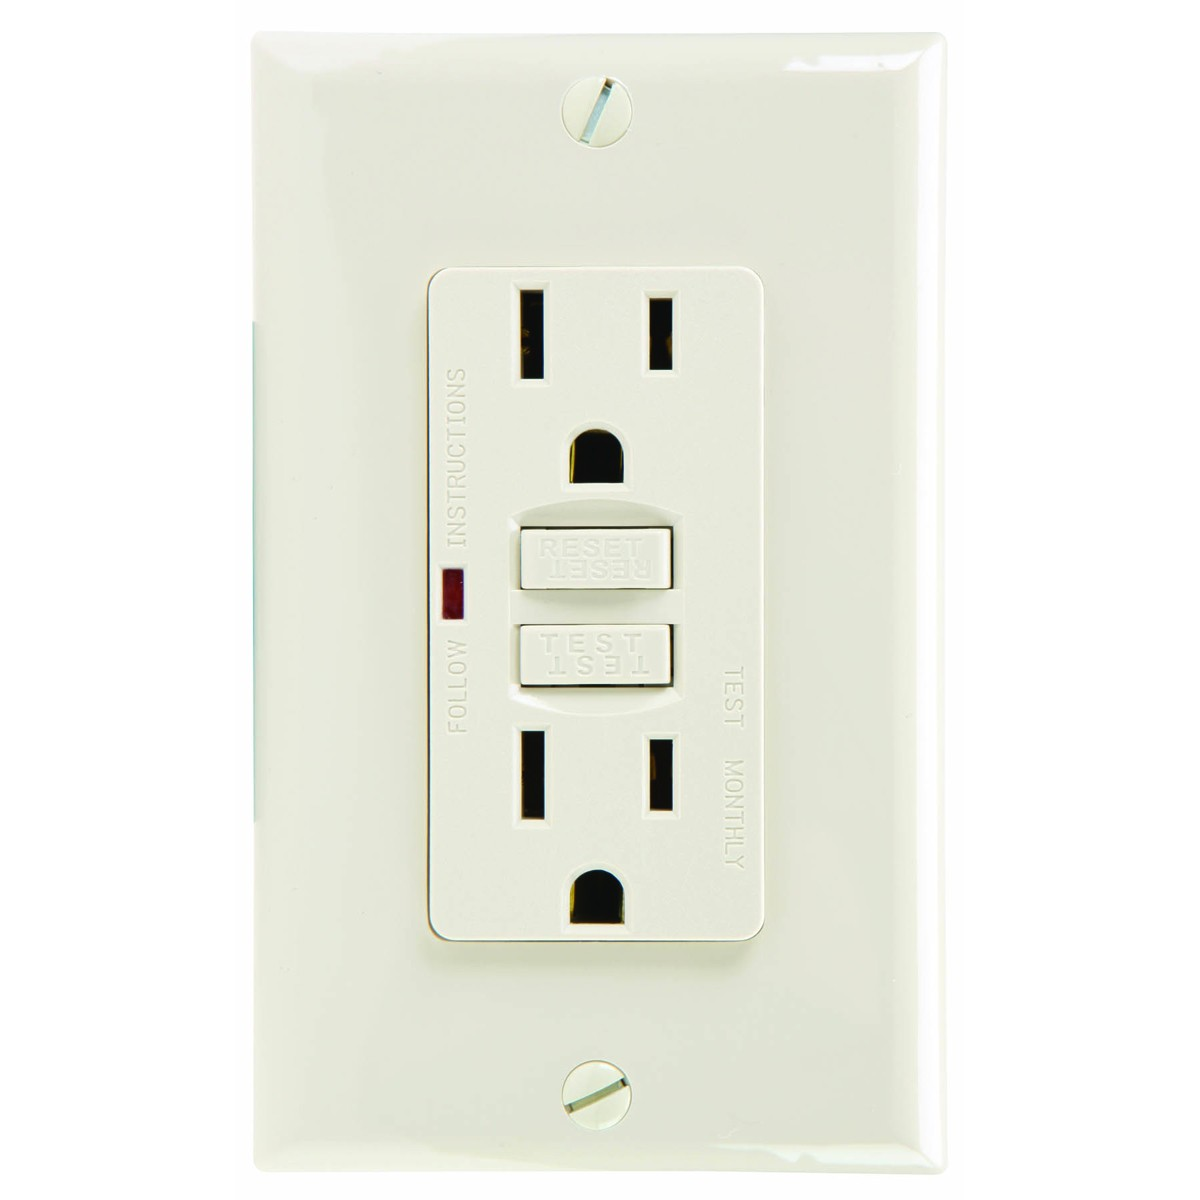 a line load gfci outlet wiring diagram light switch outlet